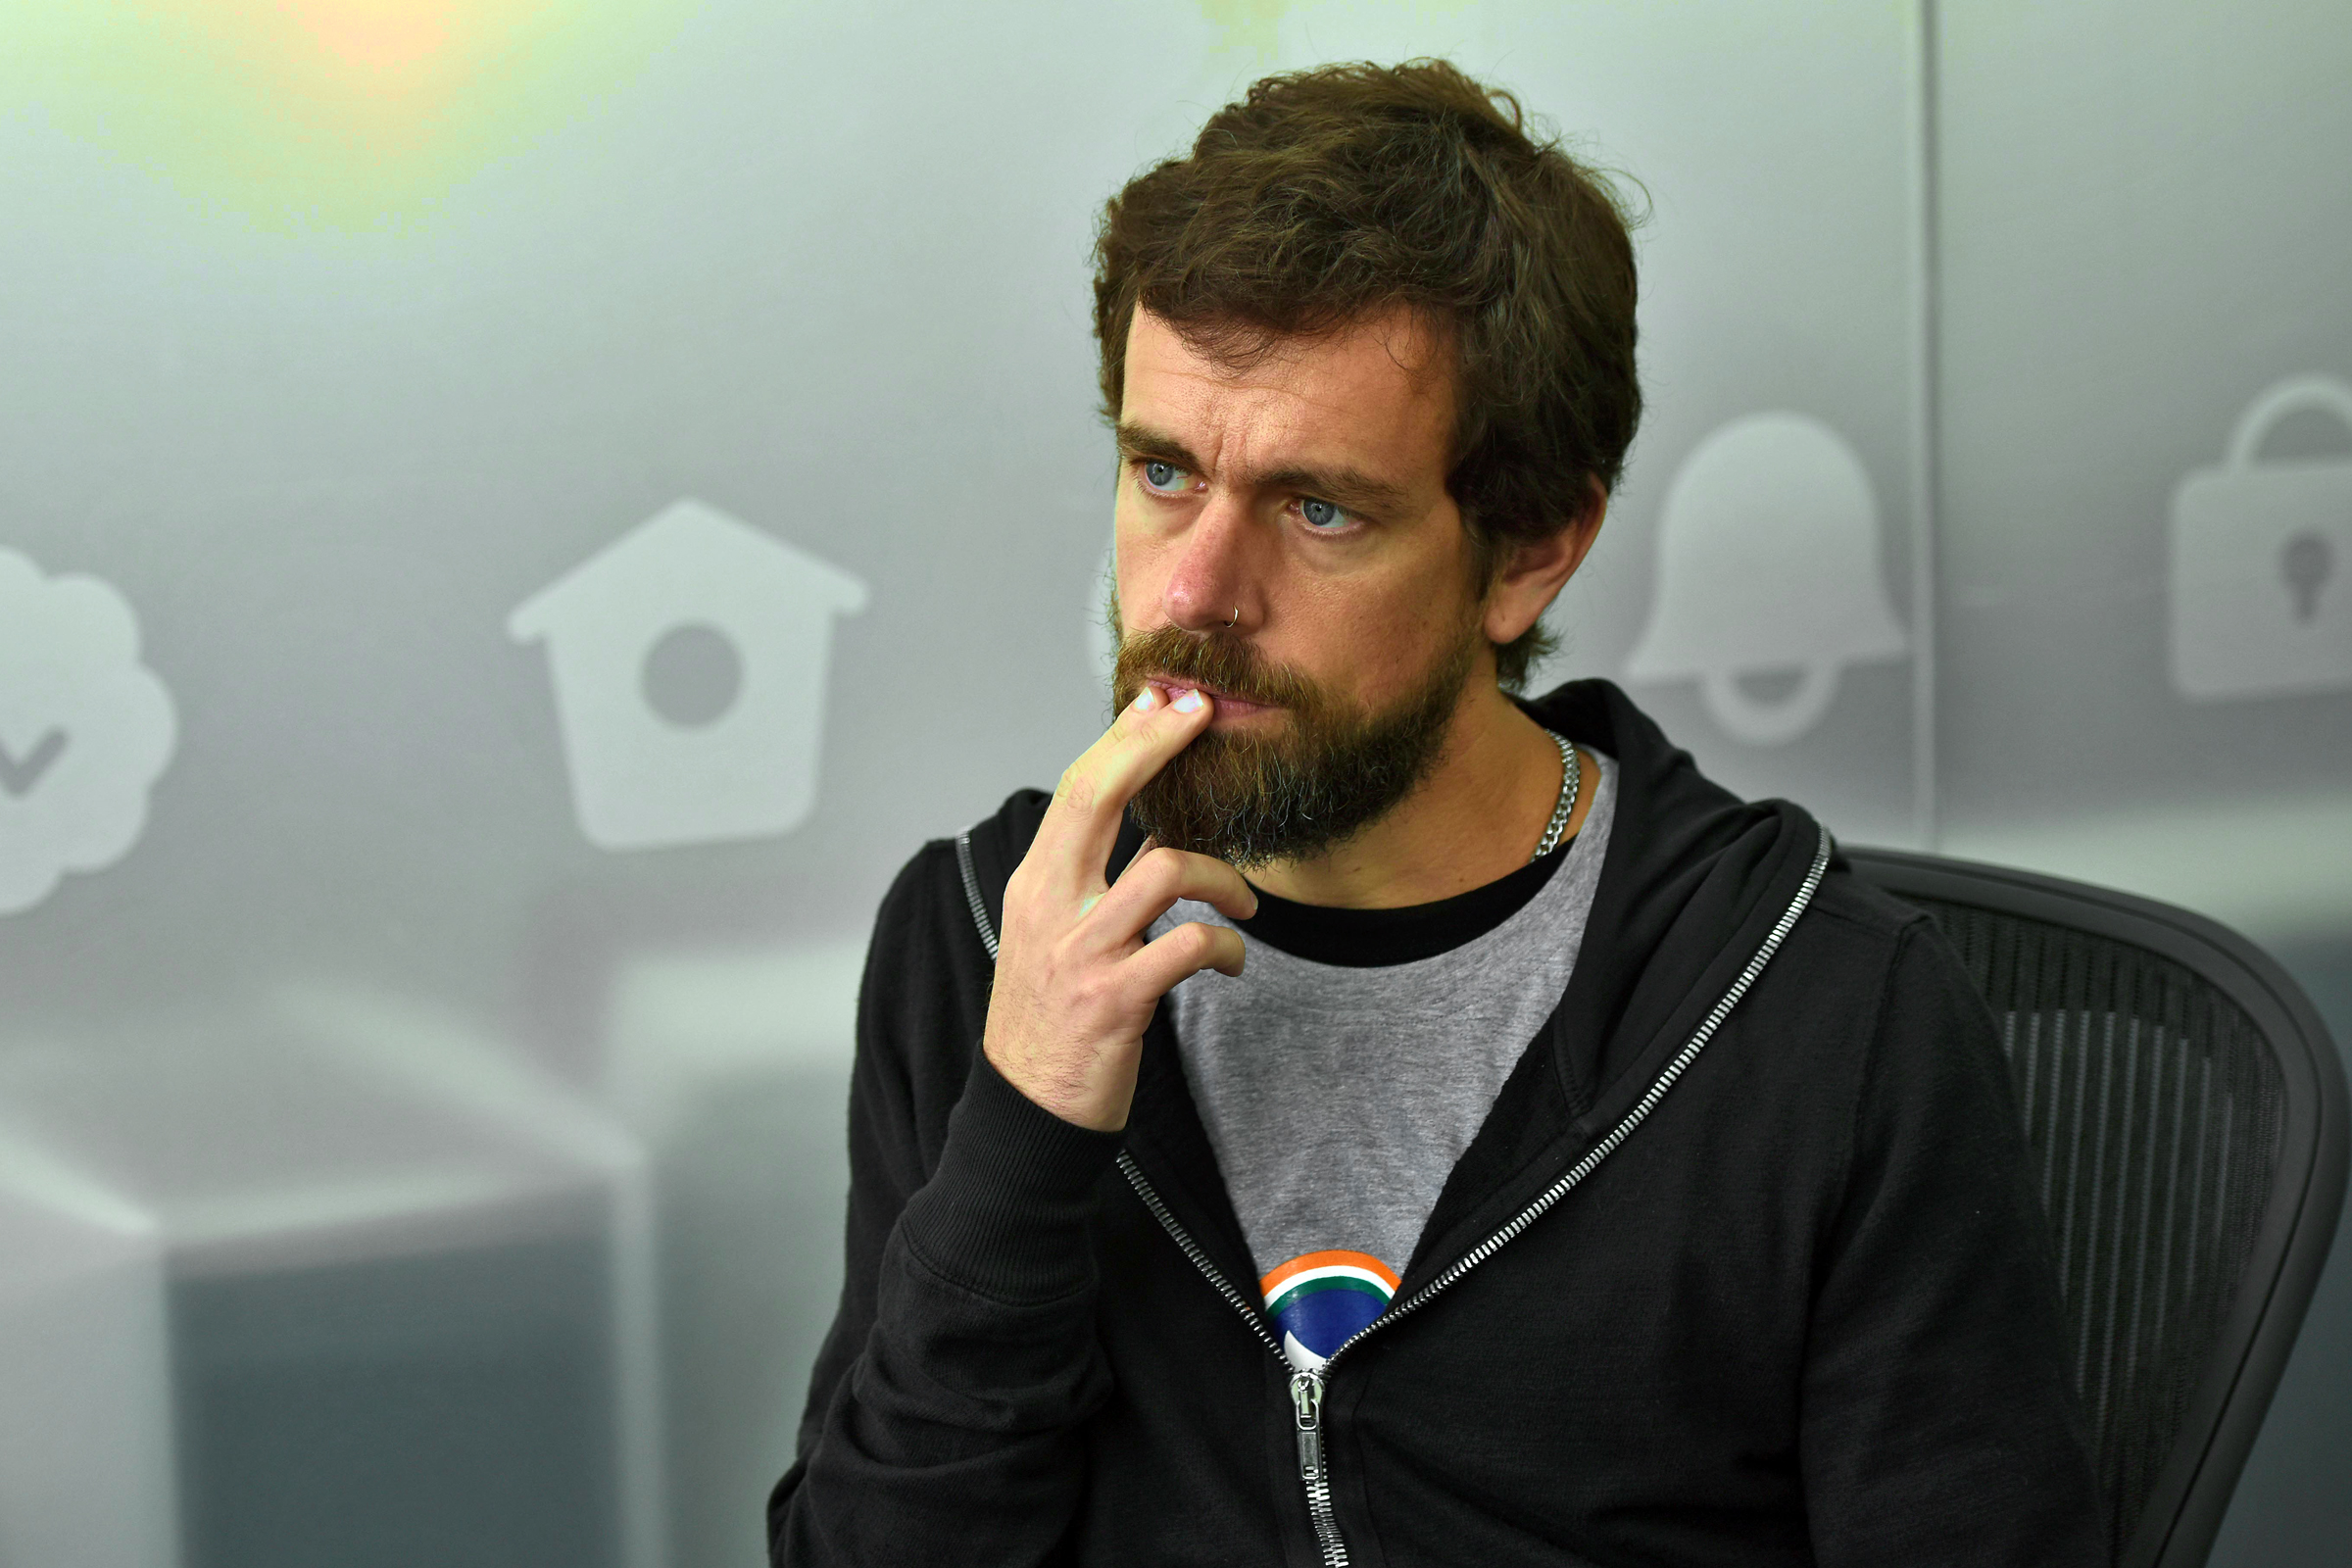 Jack Dorsey's Diet: Why Intermittent Fasting Has Dangers ...